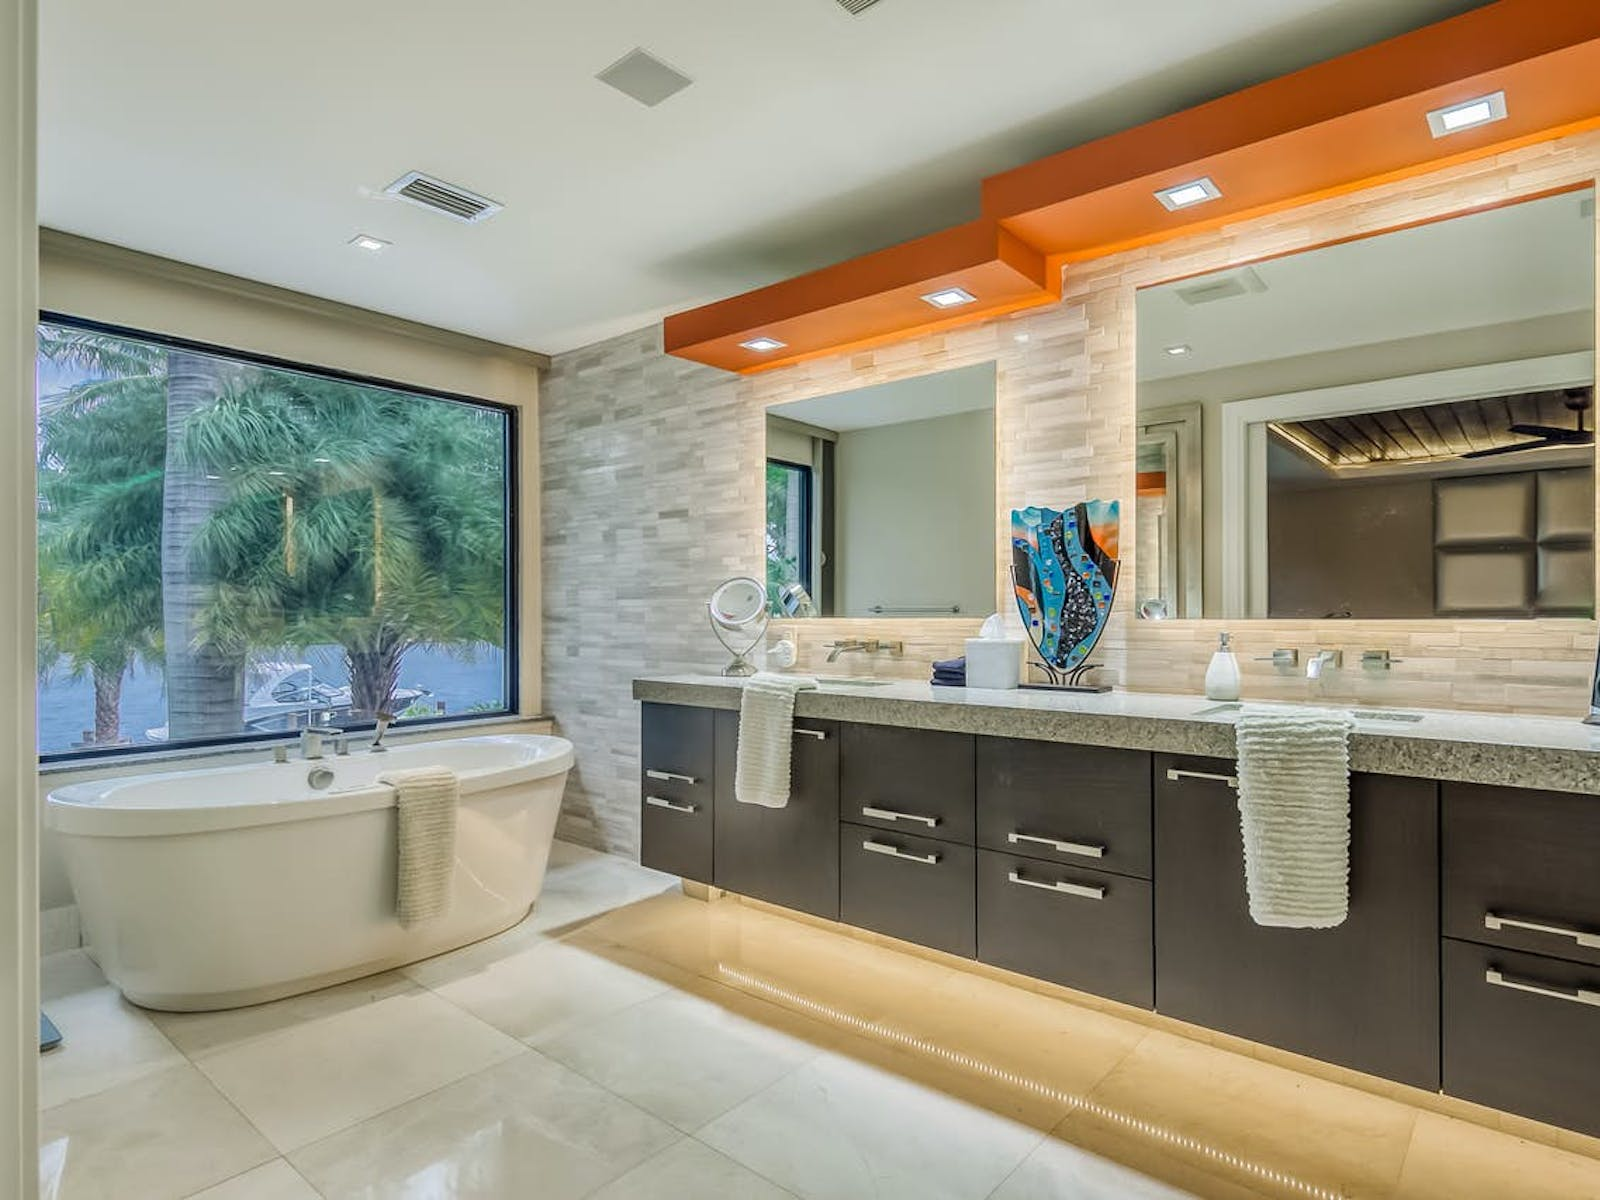 free-standing jetted tub with palm tree views